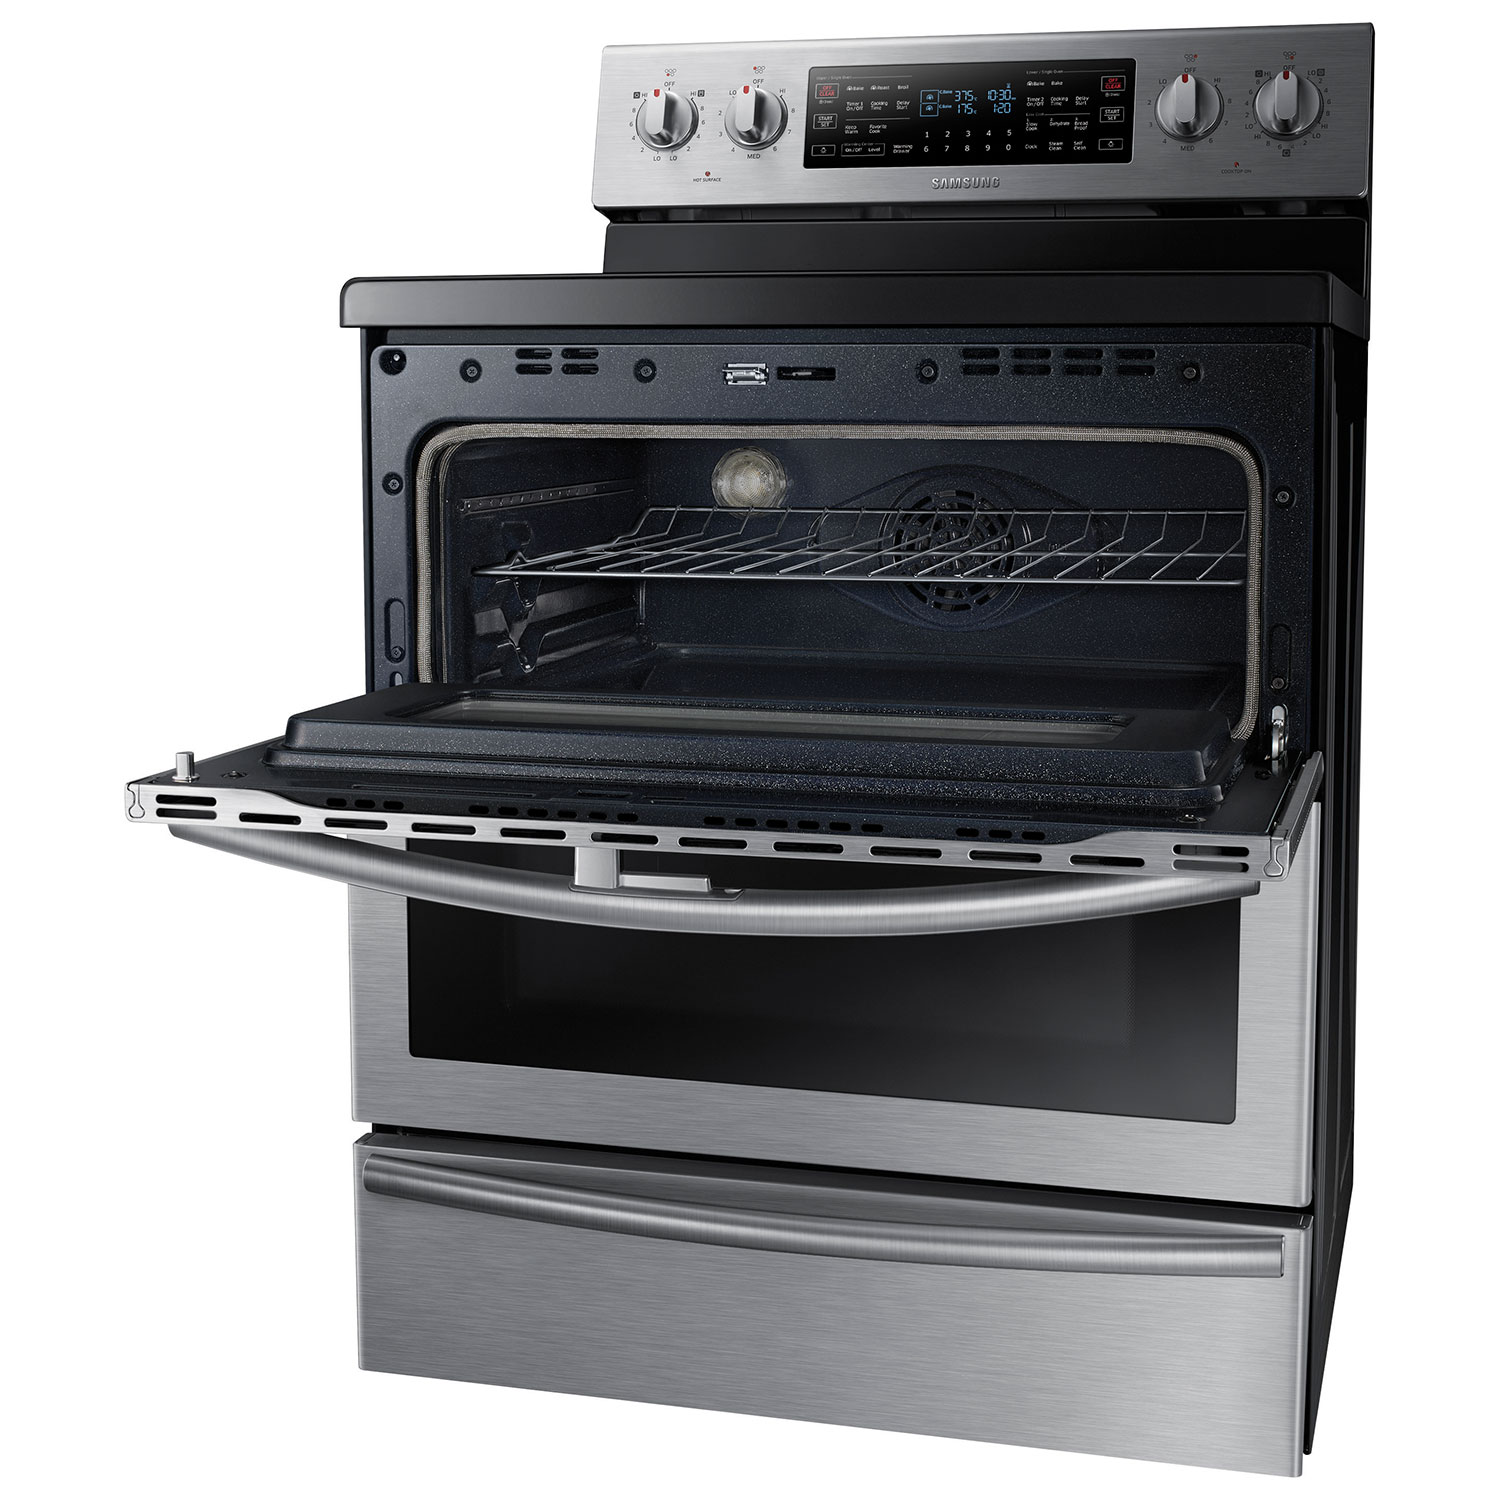 Samsung 30  5.9 Cu. Ft. Self-Clean Freestanding 5-Element Smooth Top Electric Range- Stainless Steel  Ranges - Best Buy Canada  sc 1 st  Best Buy Canada & Samsung 30